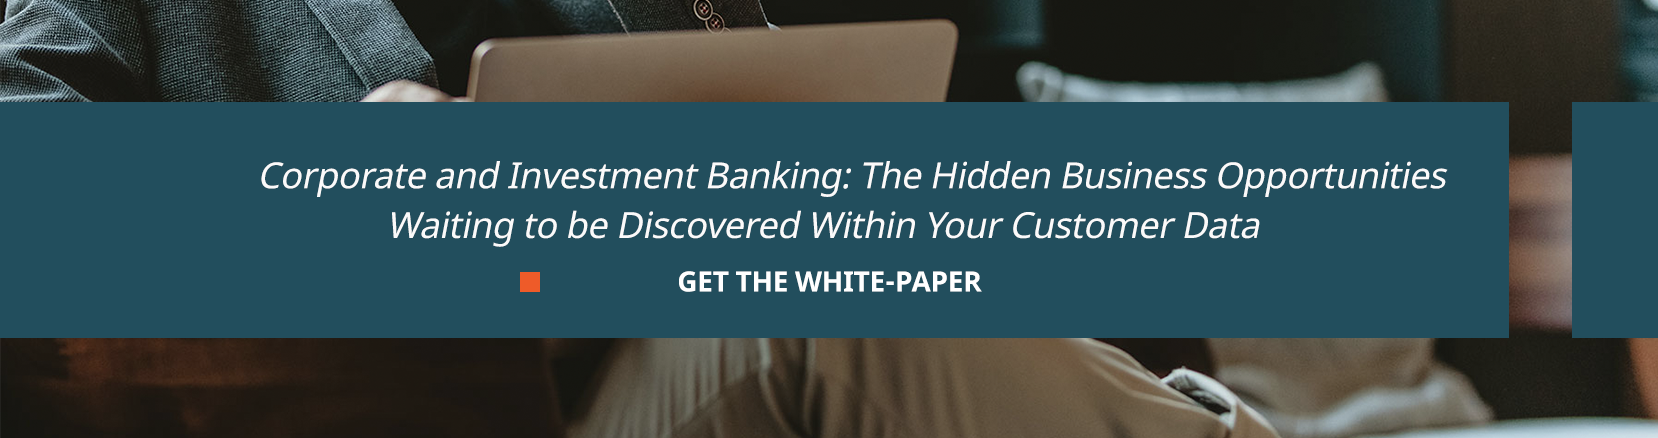 Corporate And Investment Banking: The Hidden Business Opportunities Waiting to be Discovered Within Your Customer Data